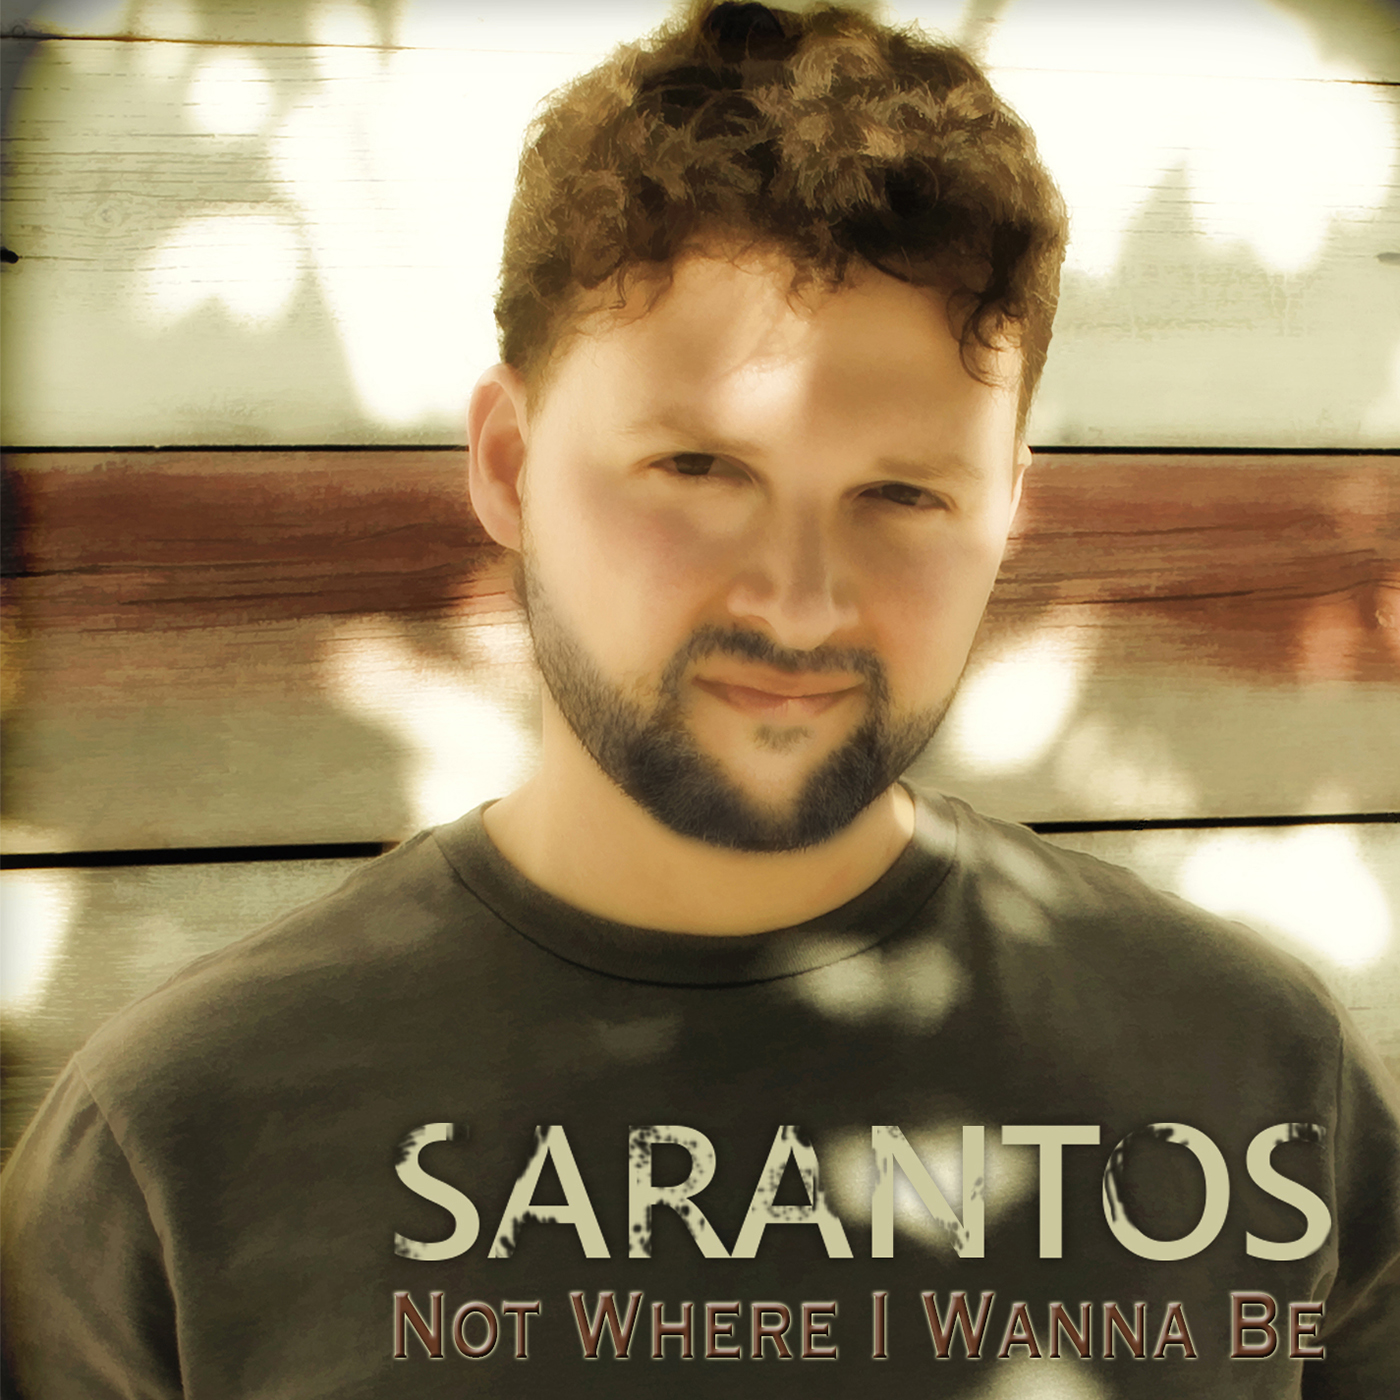 Sarantos-1st-CD-Not-Where-I-Wanna-Be-CDBaby-11-14